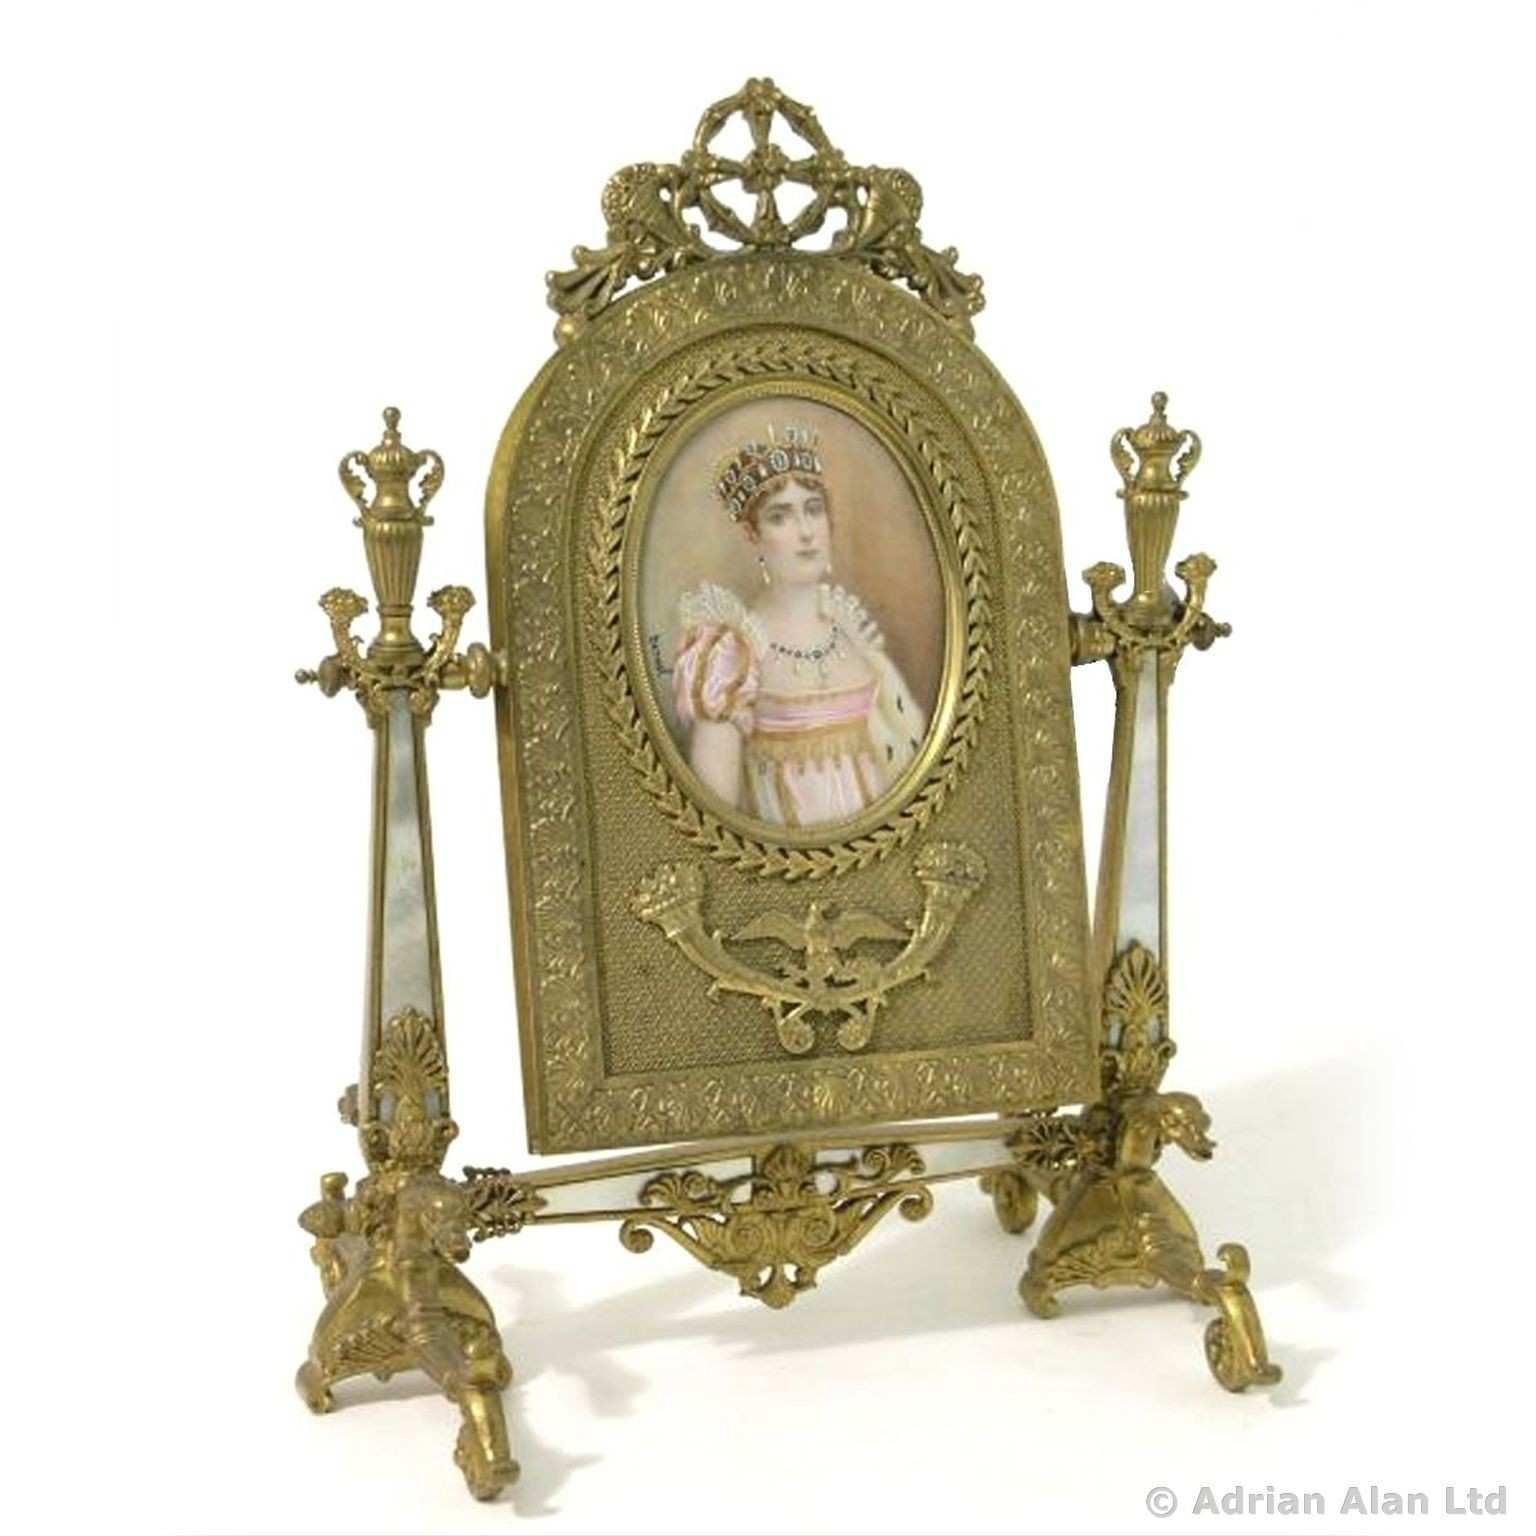 A Palais Royal Gilt Bronze and Mother of Pearl Toilet Mirror